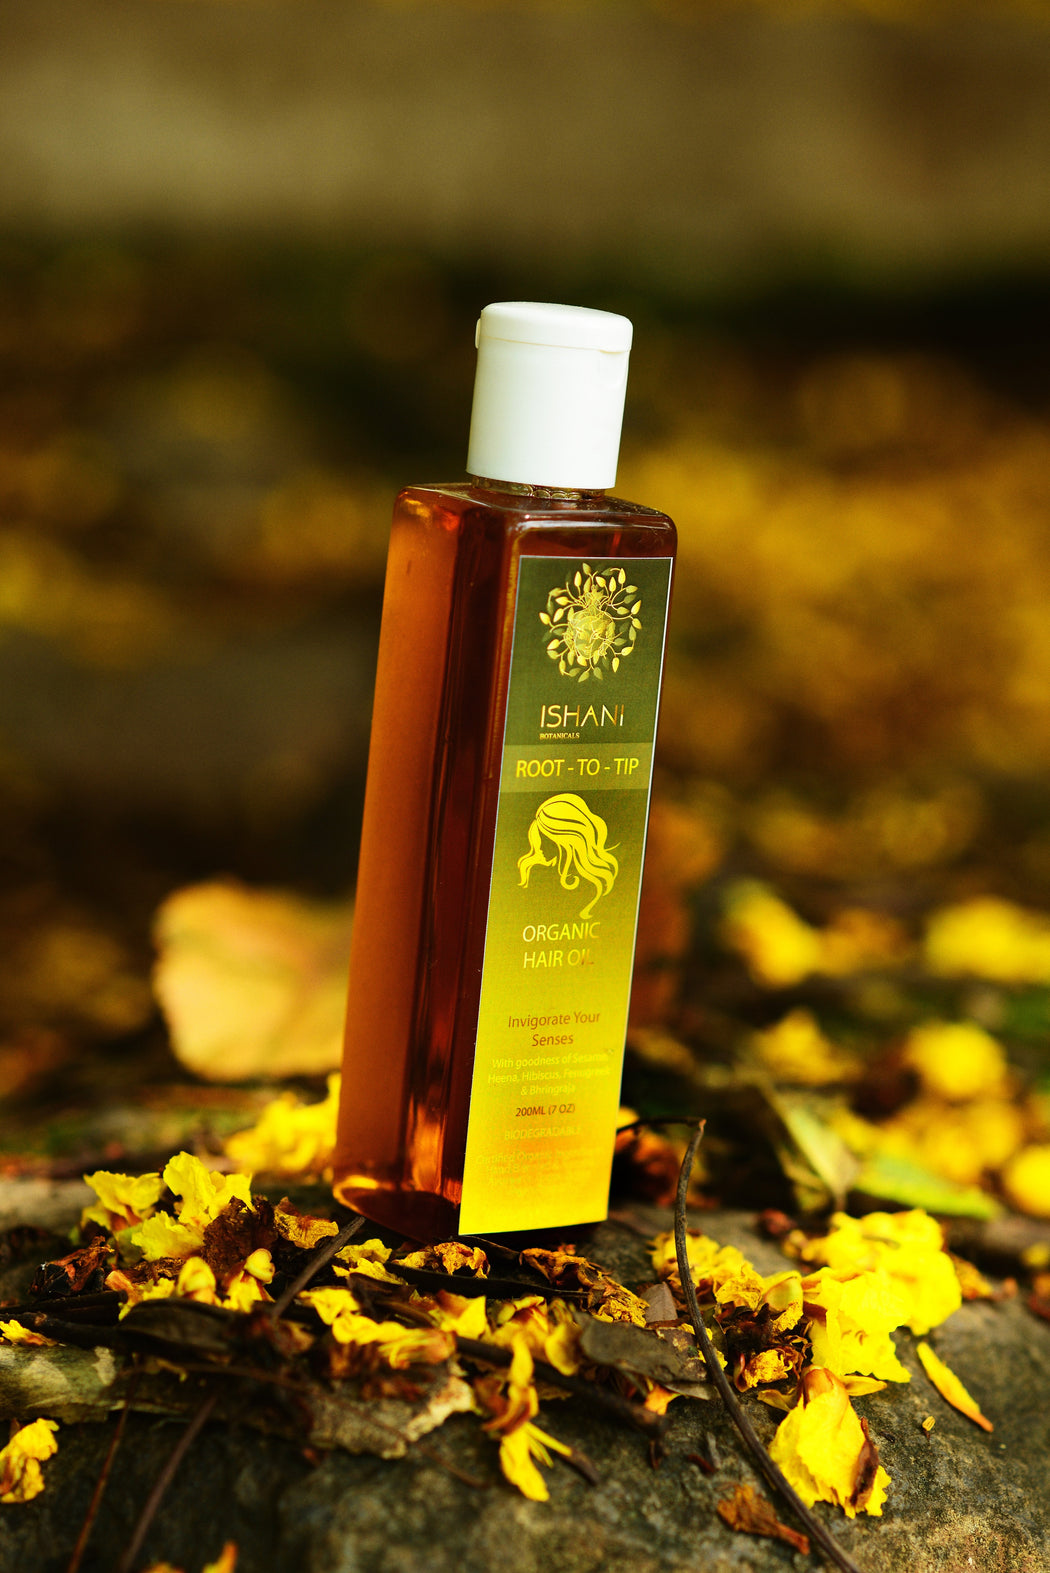 Organic Root-to-Tip Hair Oil